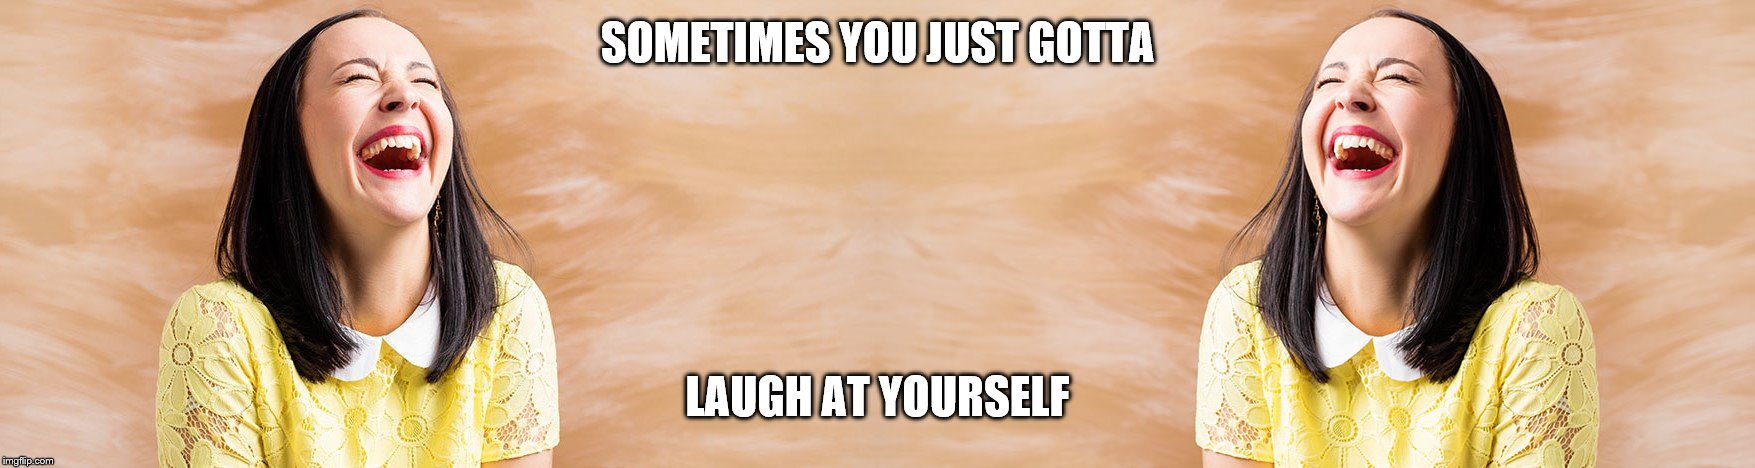 laugh at yourself 1 | SOMETIMES YOU JUST GOTTA LAUGH AT YOURSELF | image tagged in laugh | made w/ Imgflip meme maker